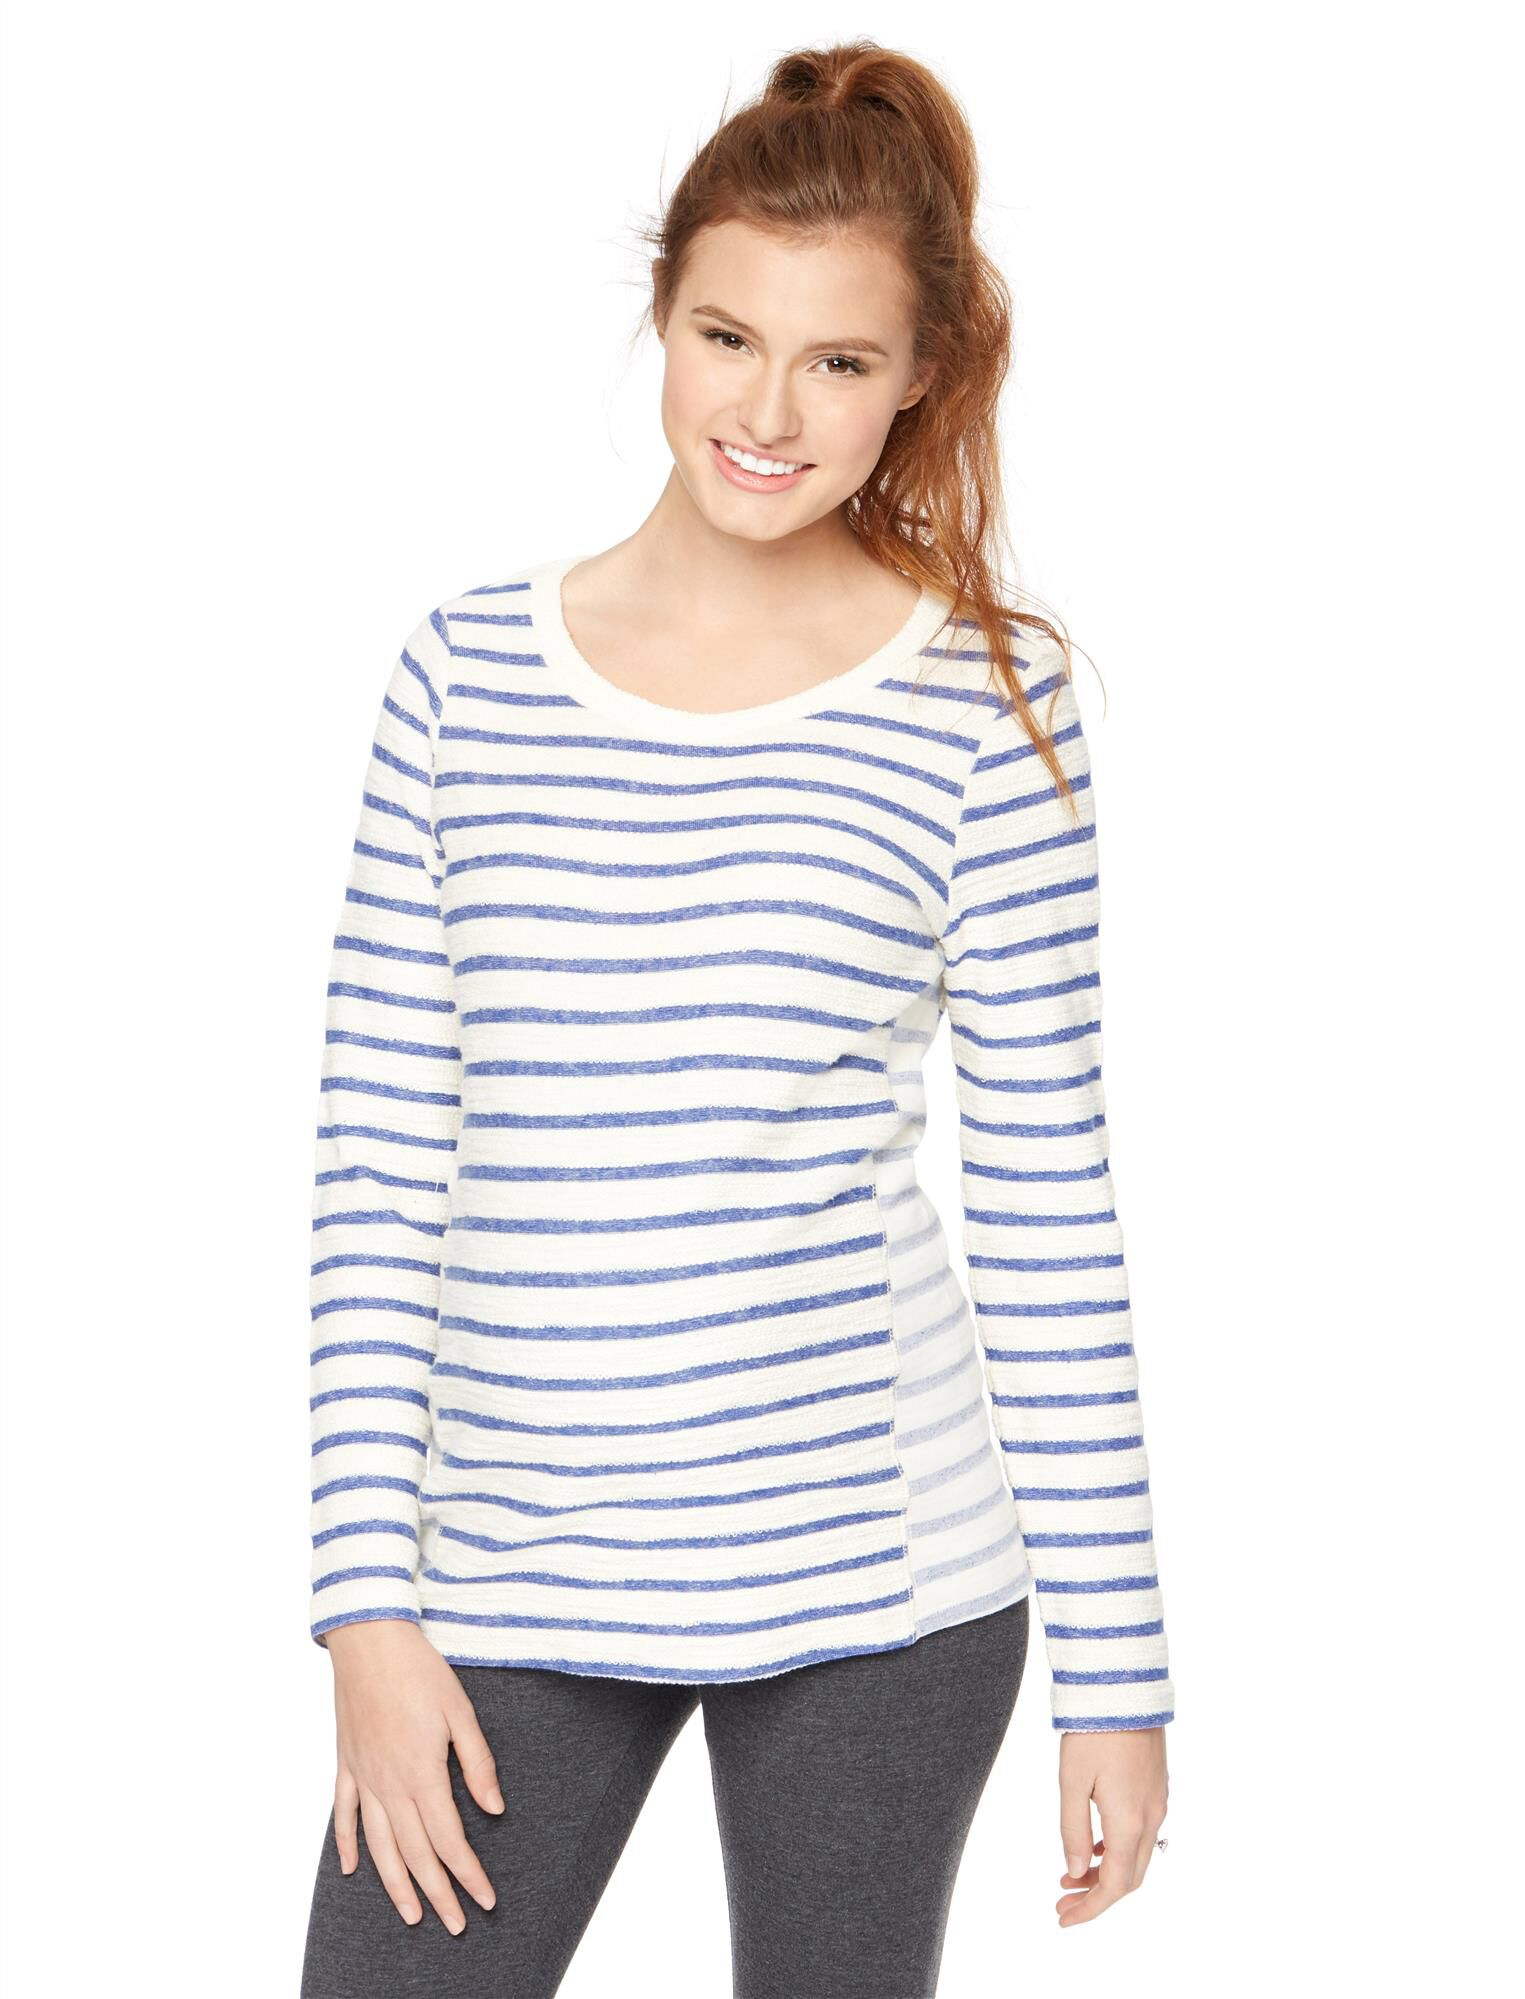 High-low Hem Maternity Sweatshirt